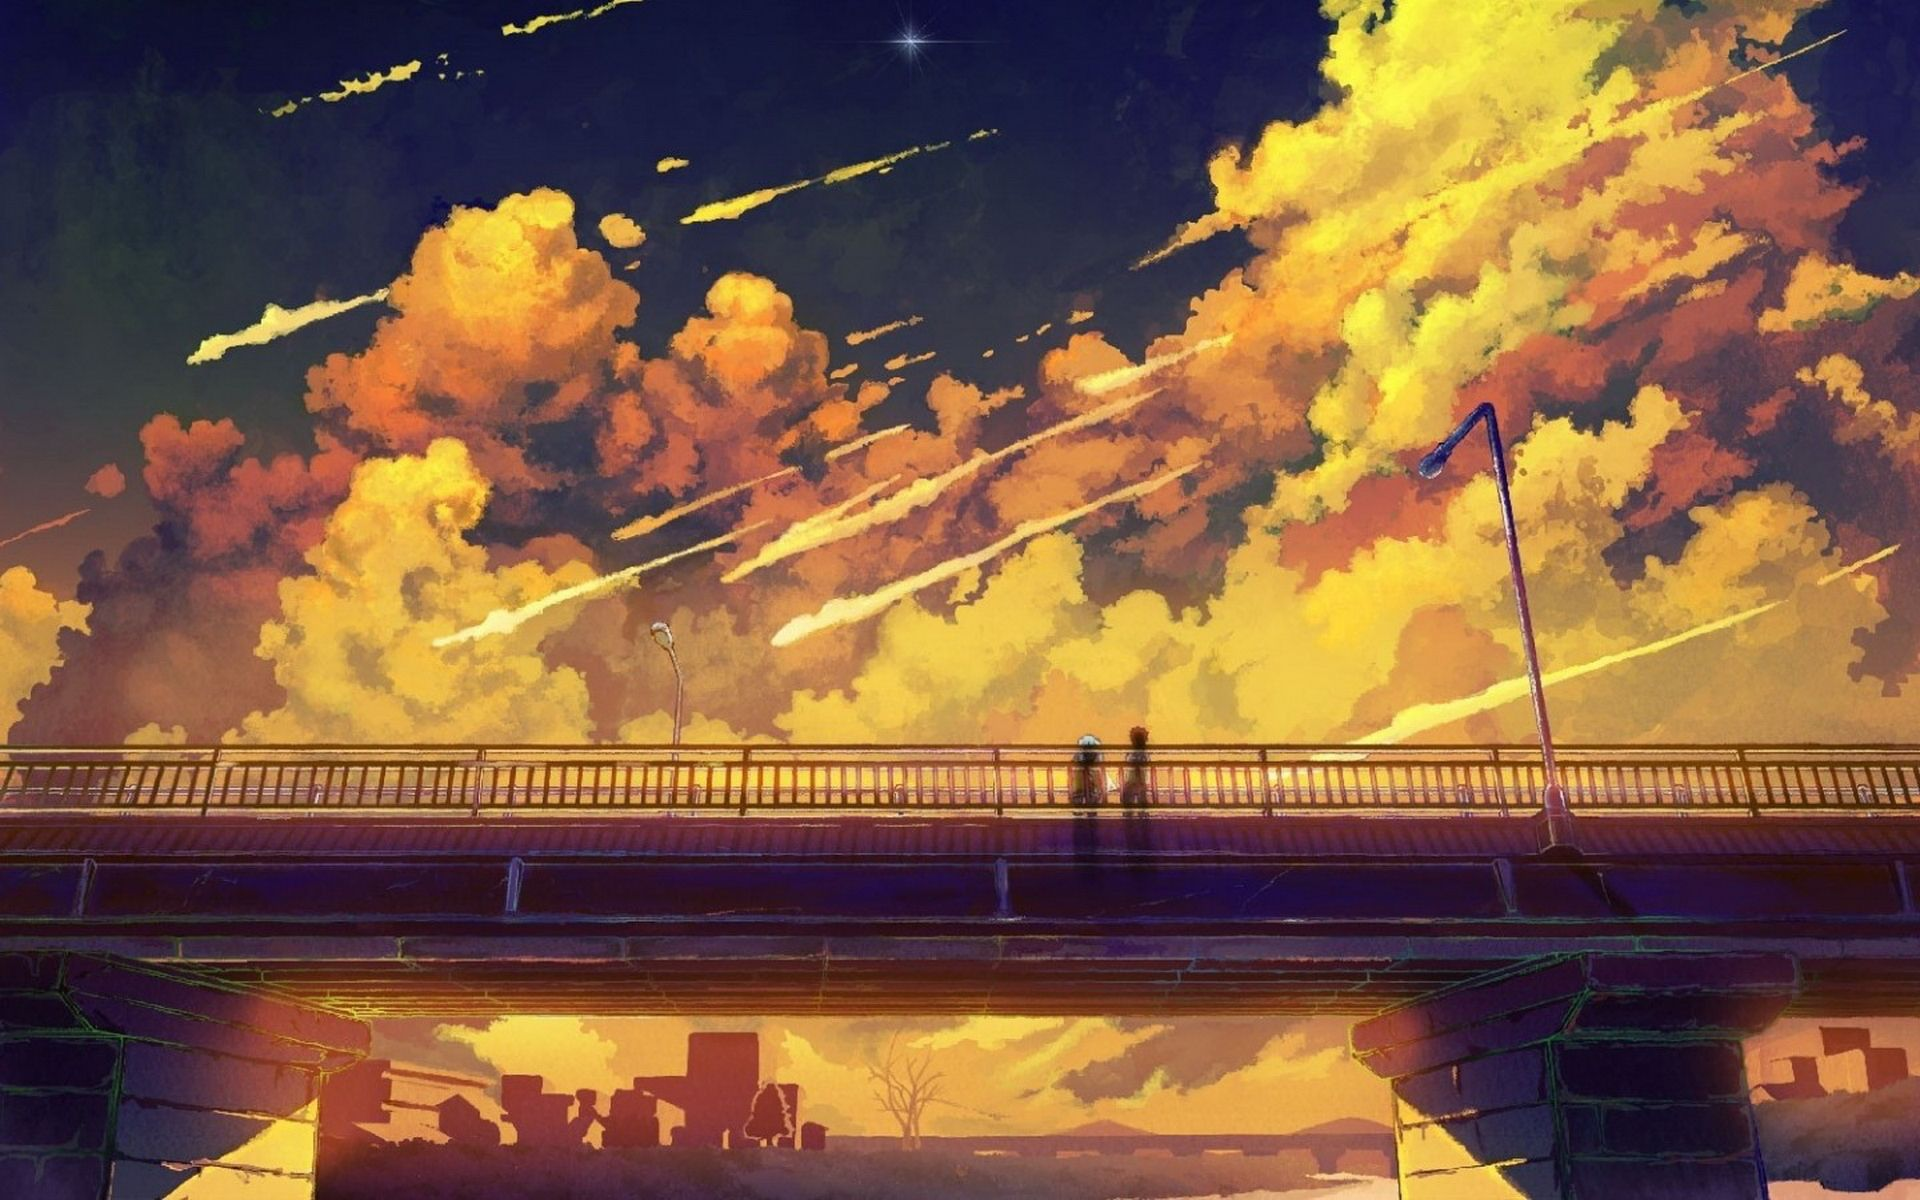 Anime Scenery Wallpapers Wide In 2020 Scenery Wallpaper Anime Scenery Landscape Wallpaper